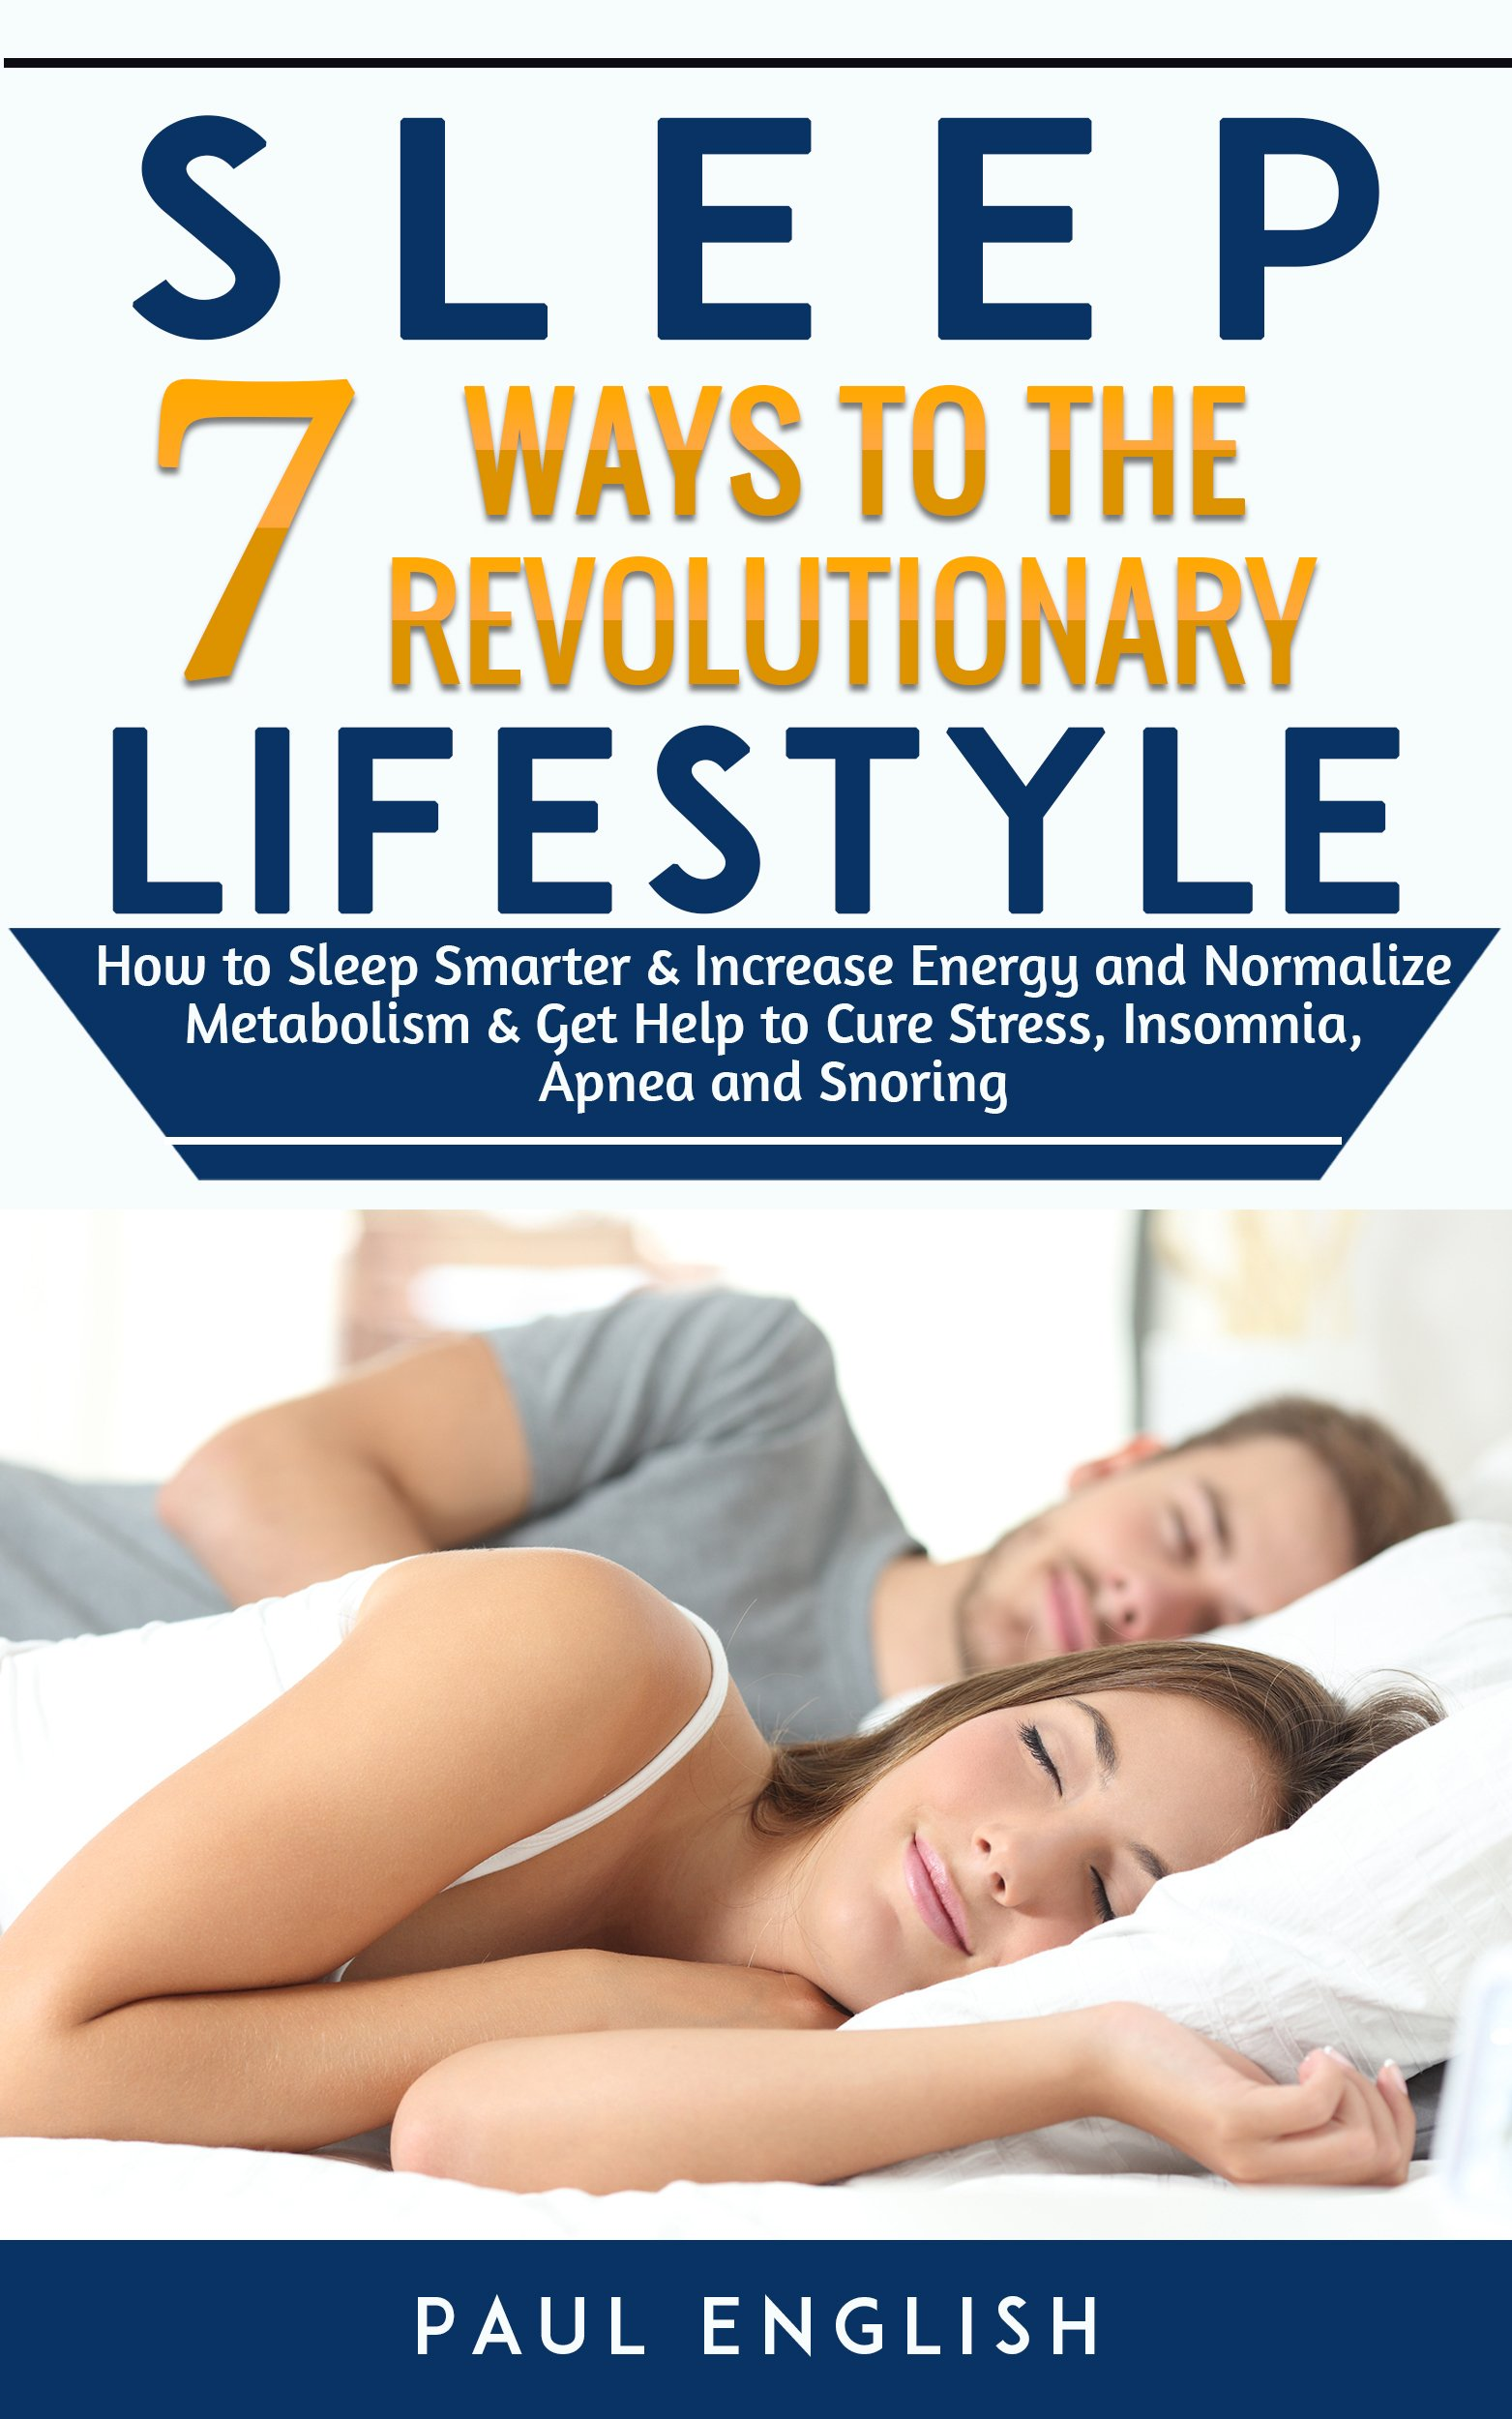 Sleep  7 Ways To The Revolution Lifestyle How To Sleep Smarter And Increase Energy And Normalize Metabolism And Get Help To Cure Stress Insomnia Apnea And ... Insomnia Apnea Snoring   English Edition